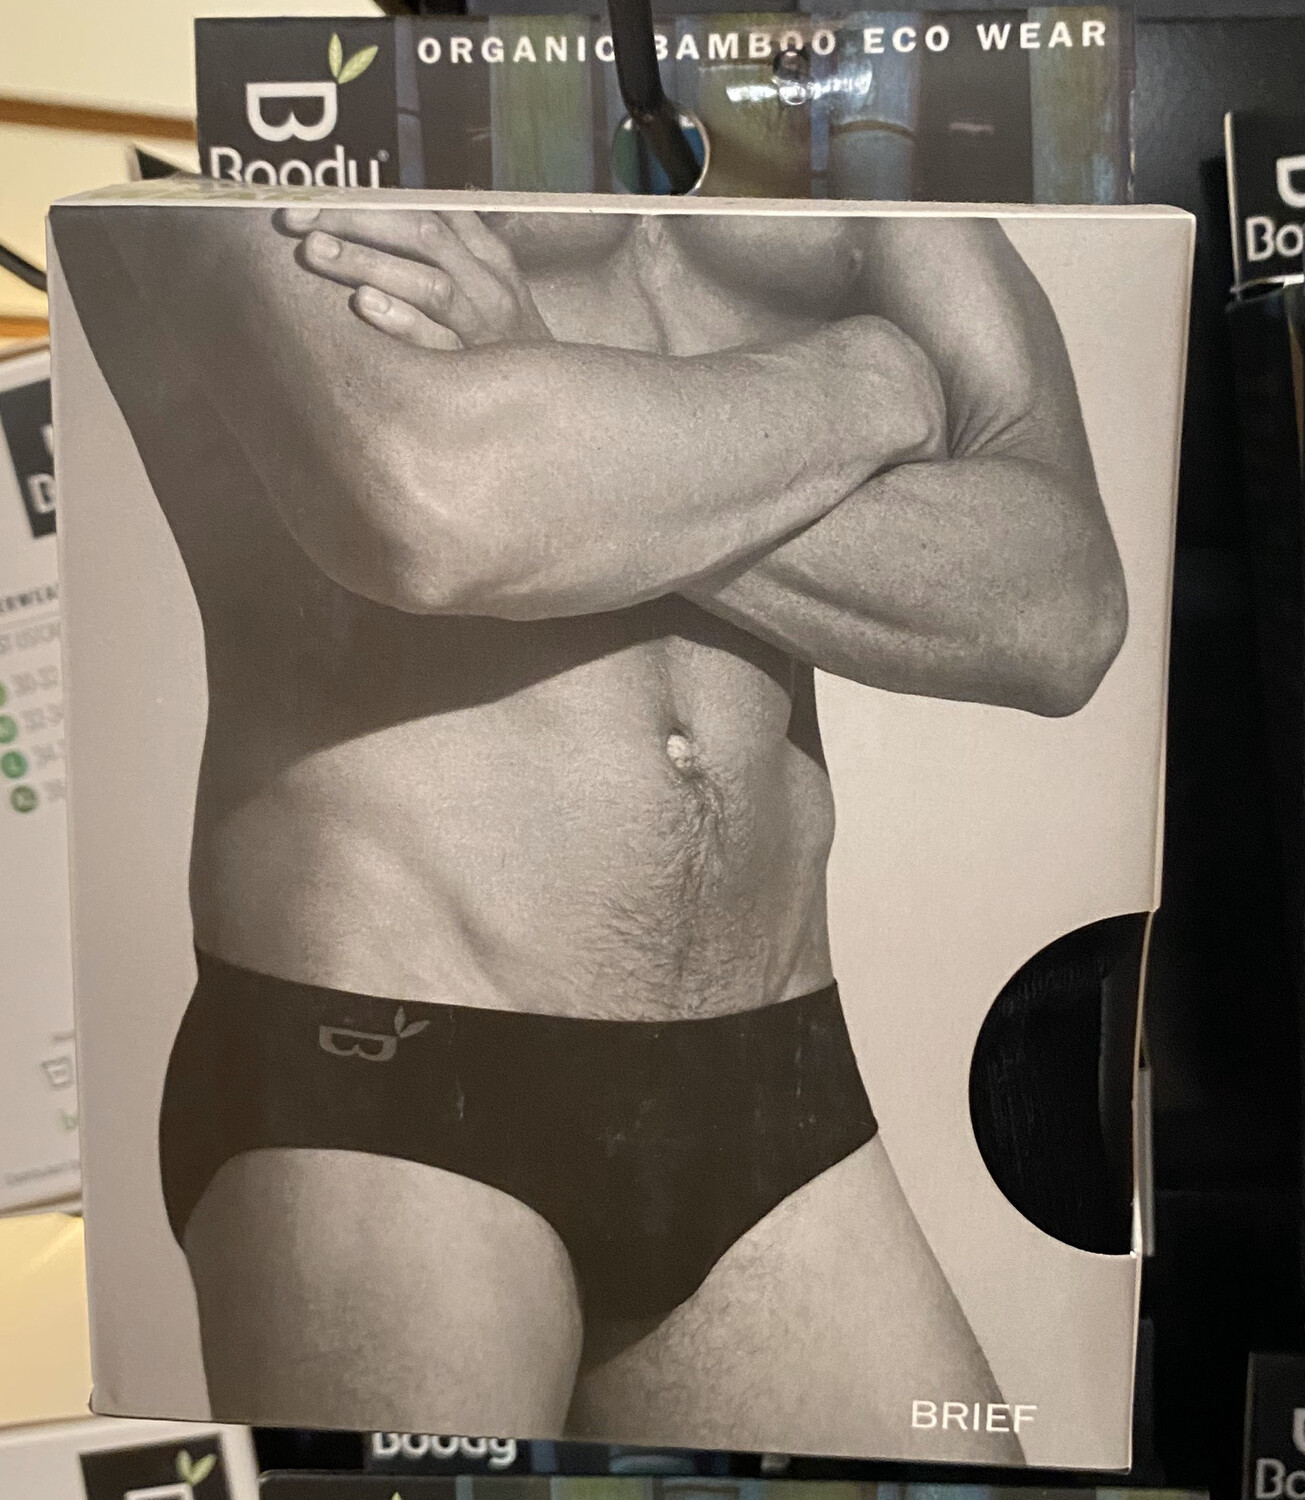 Men's Black Bamboo Booty Wear Classic Brief Tap For Sizes